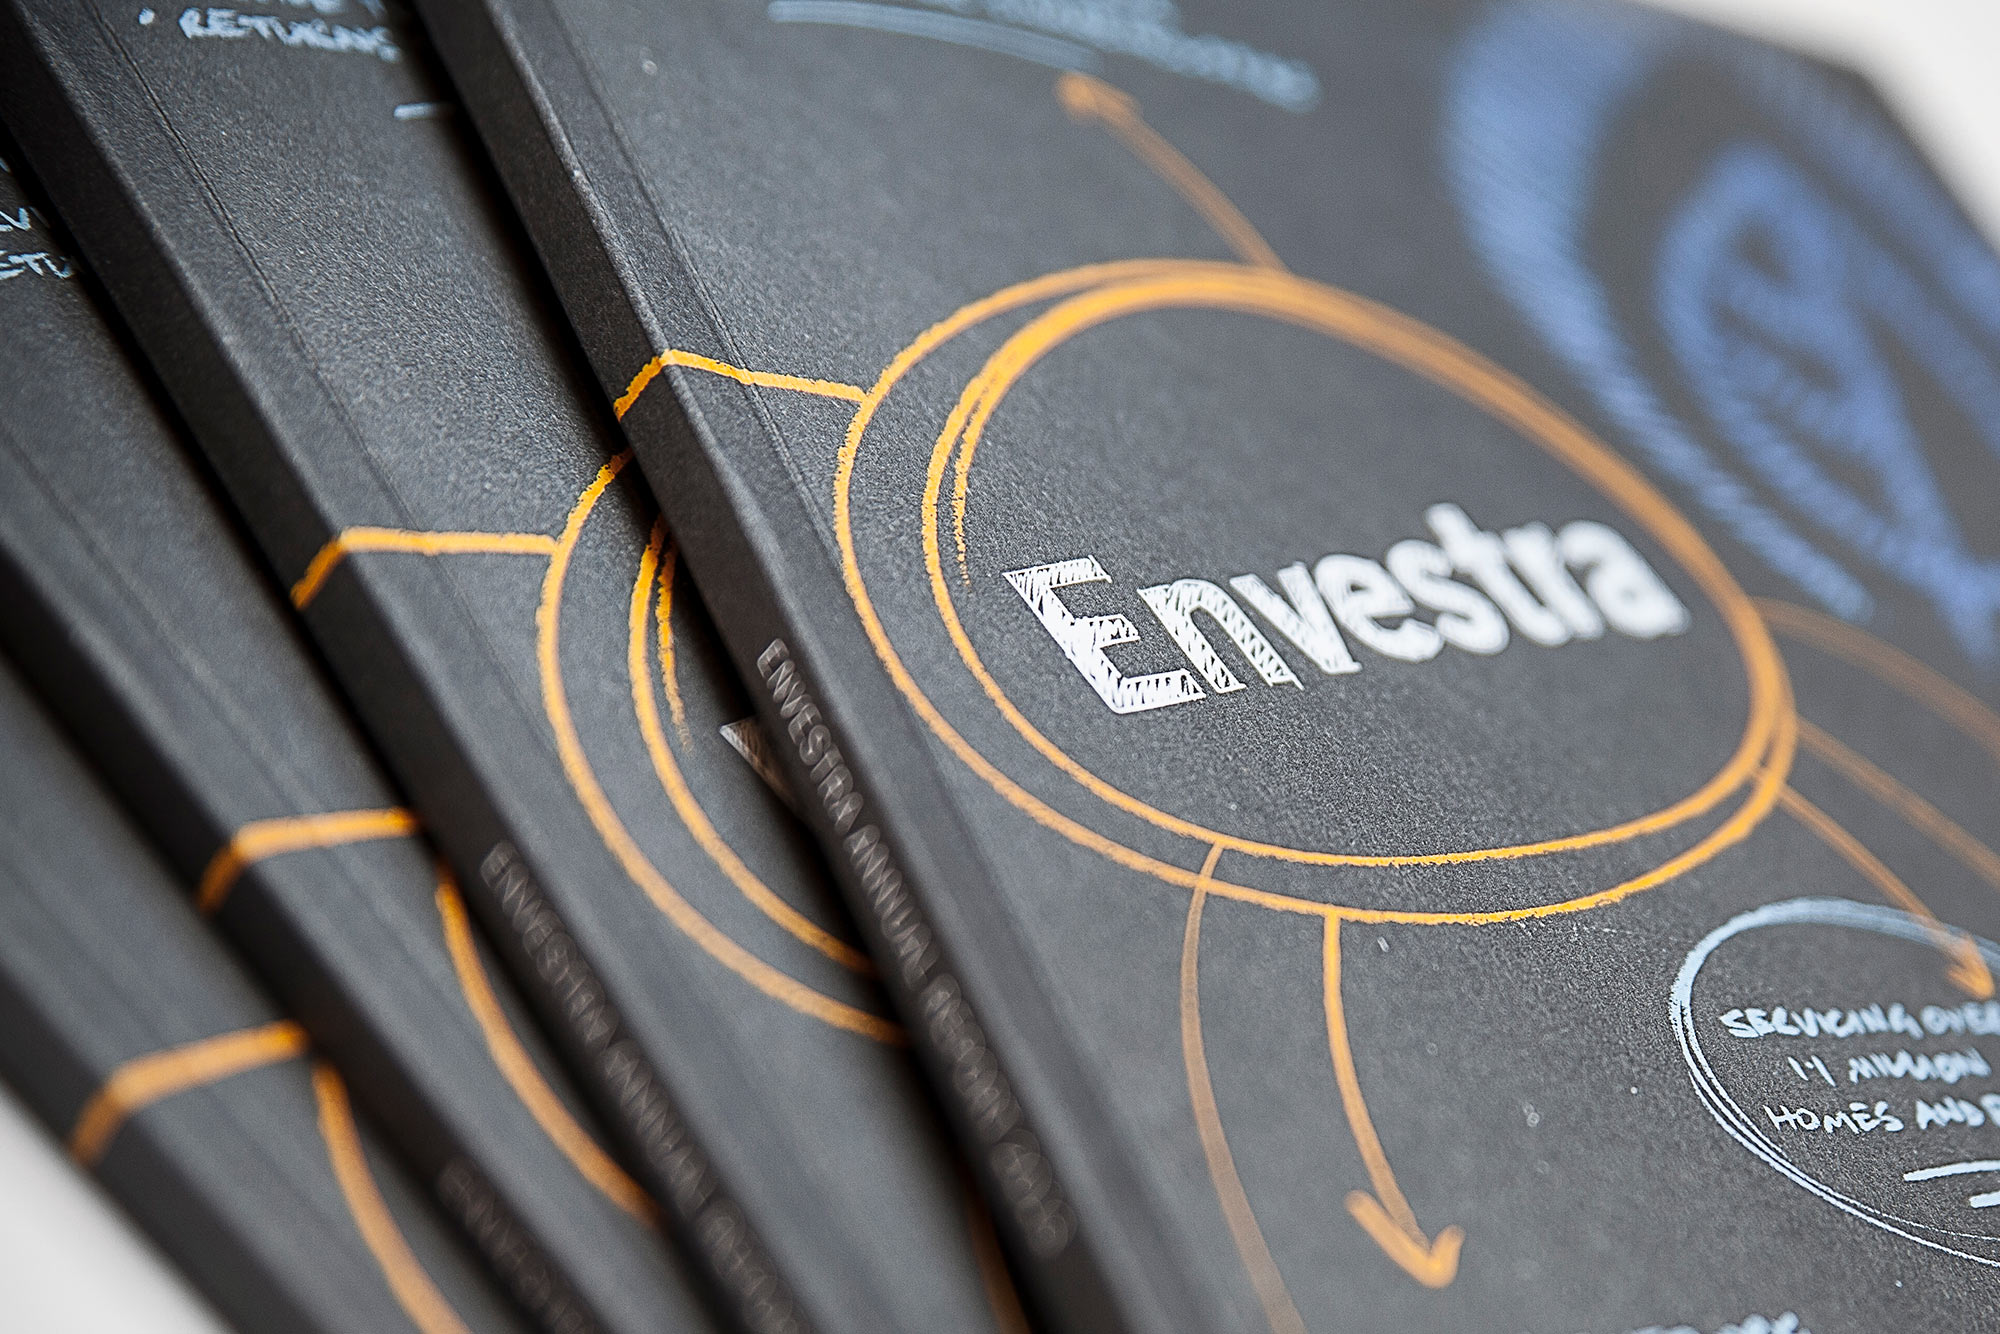 Image of the Envestra 2013 Annual Report